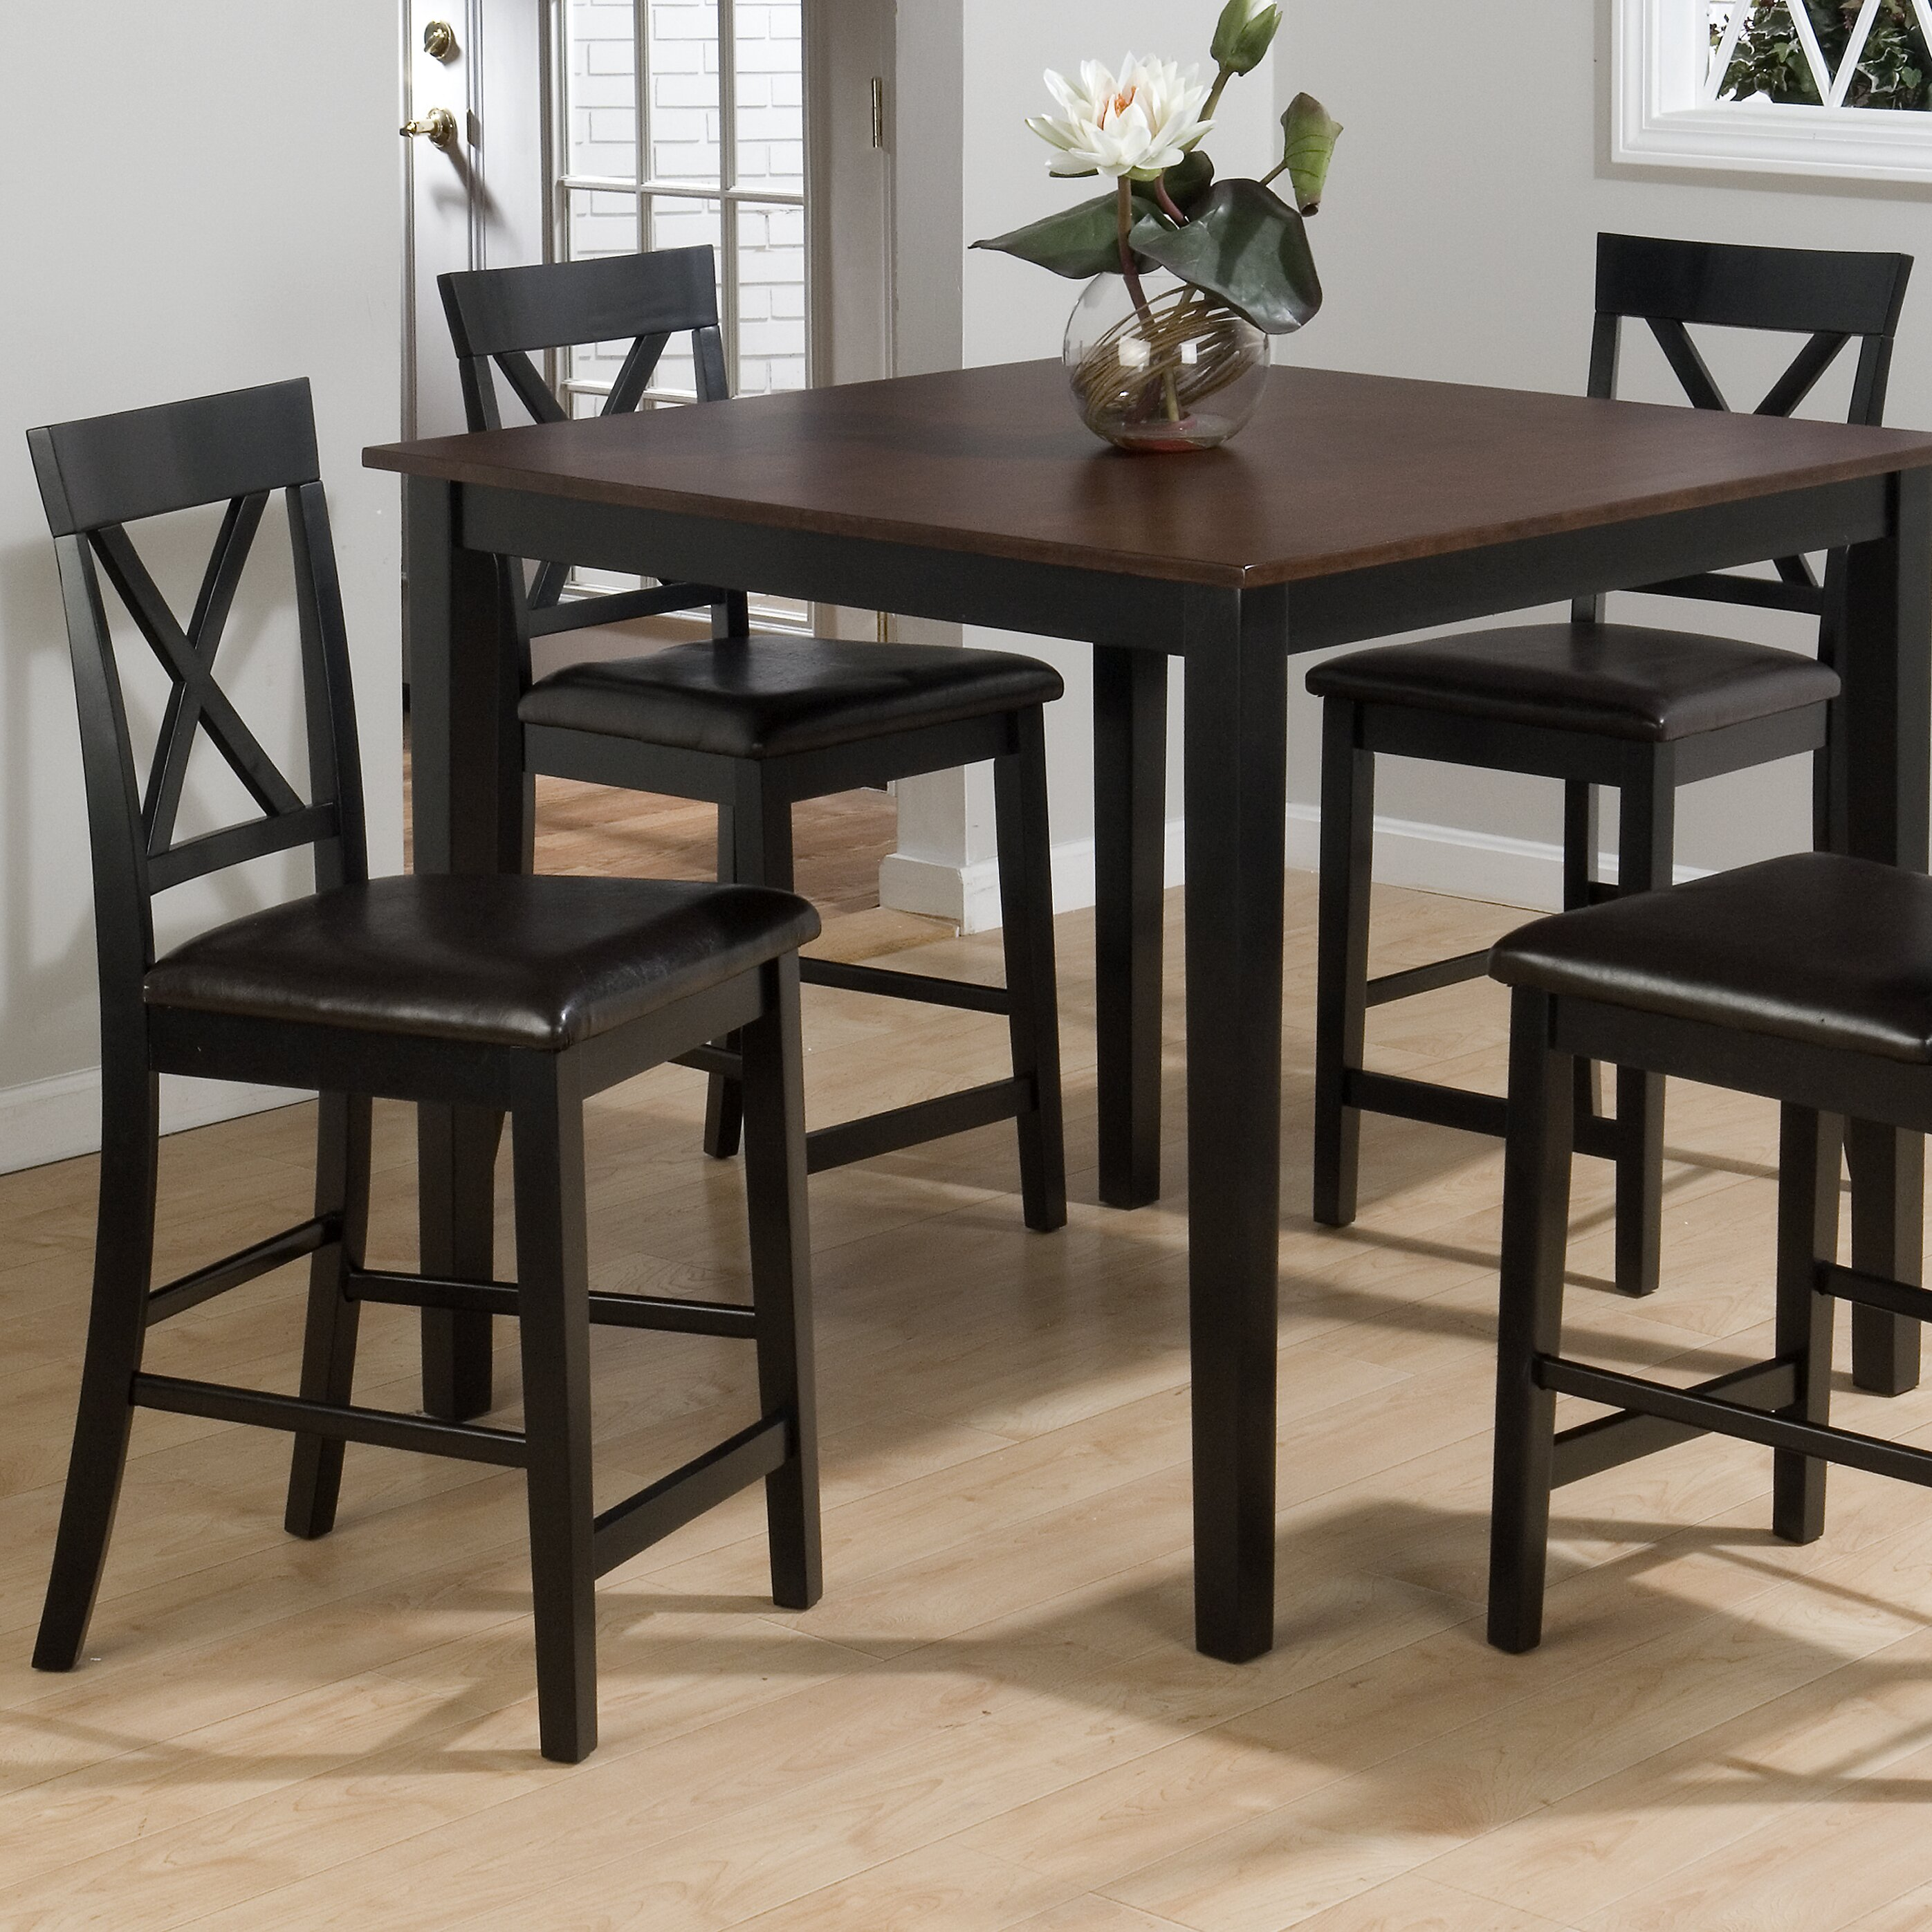 Jofran Burly 5 Piece Counter Height Dining Table Set